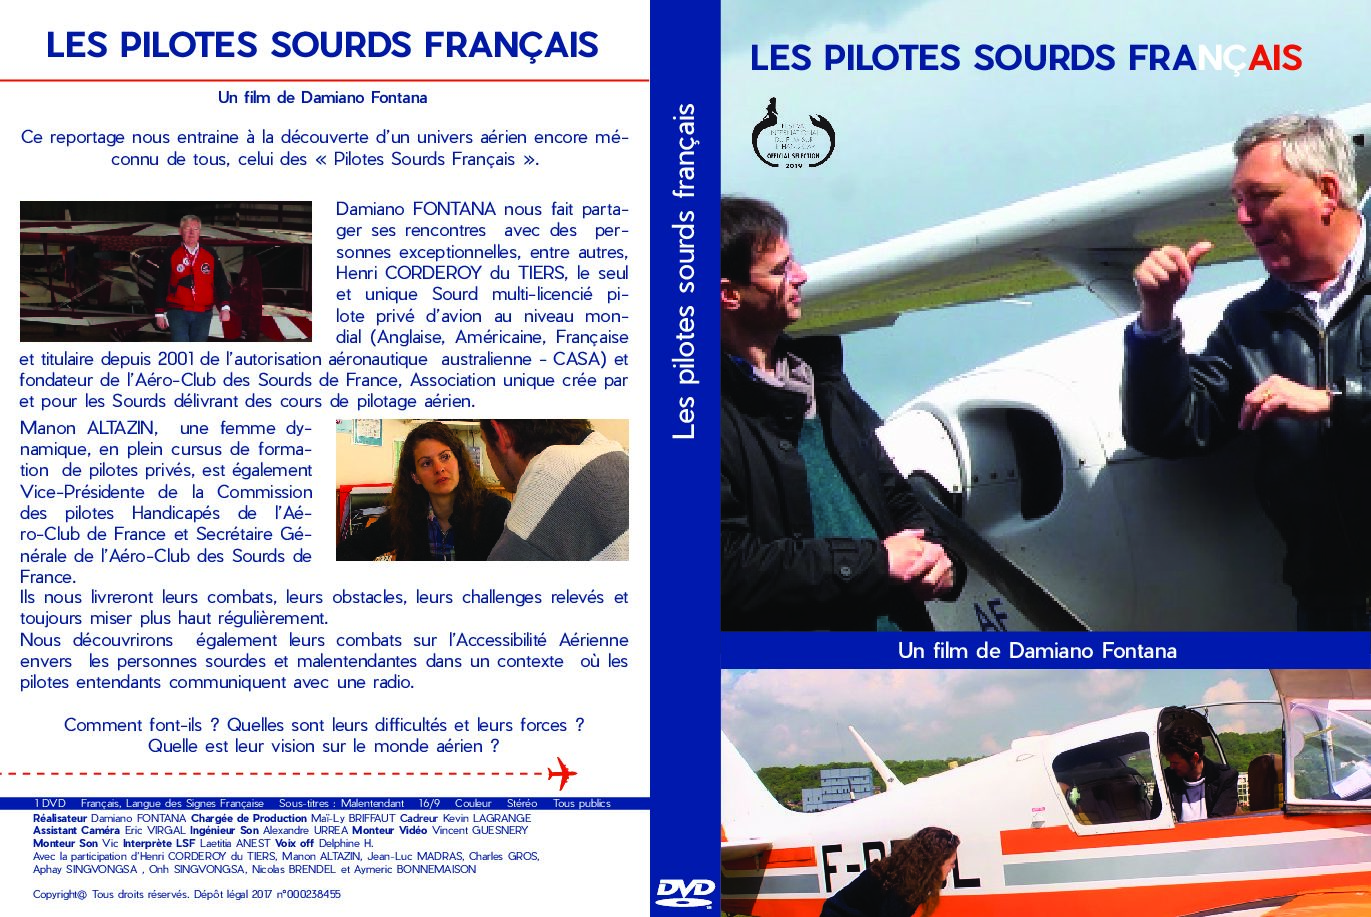 Jaquette DVD Les pilotes sourds v3